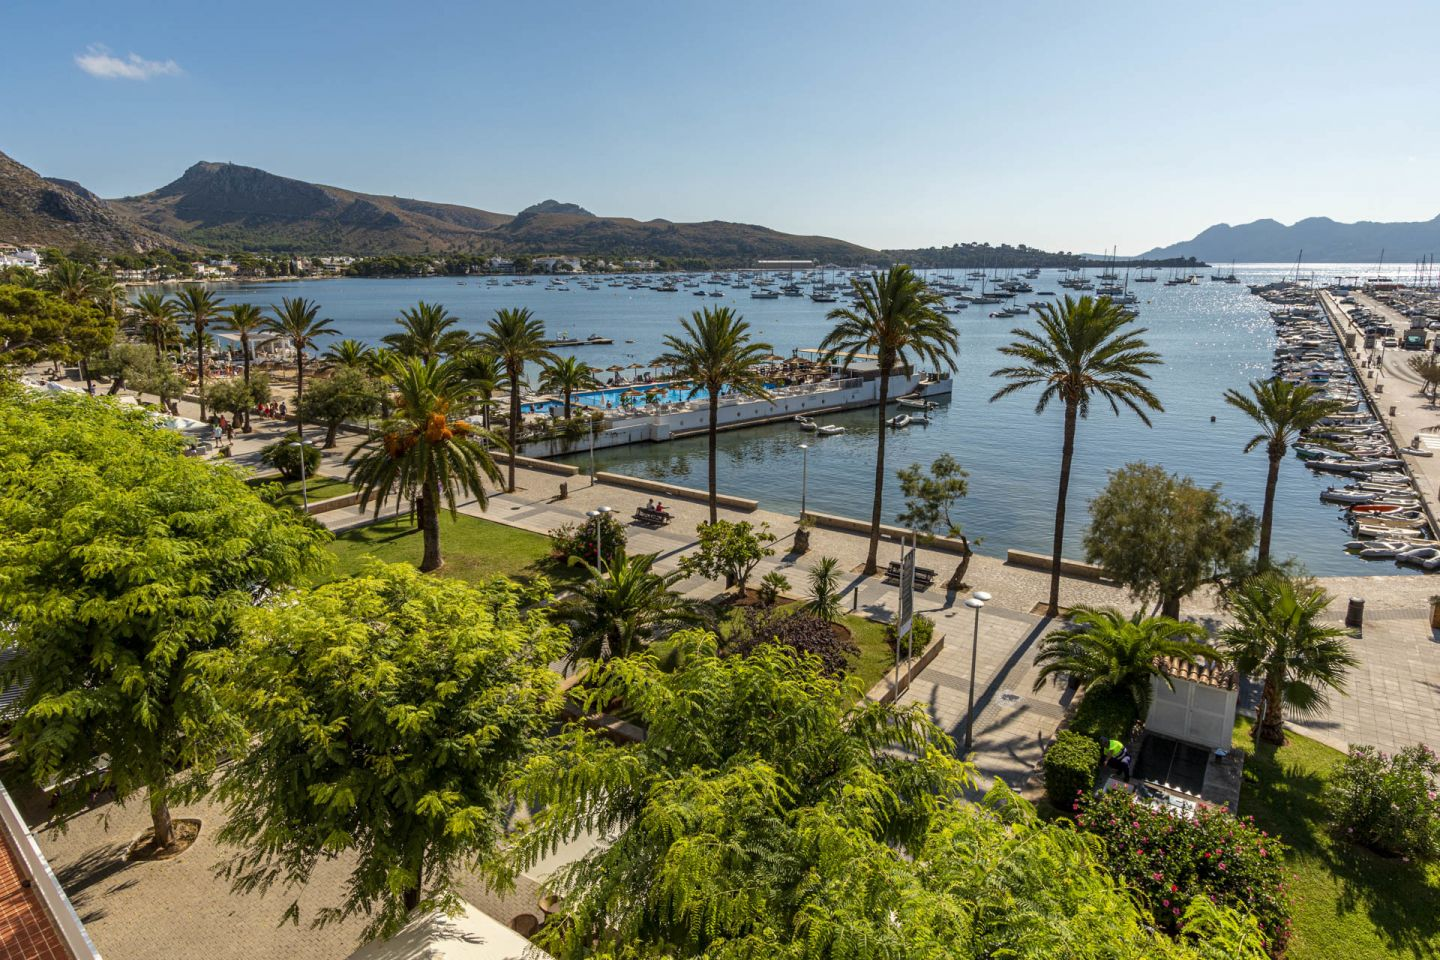 4 Bed Apartment for sale in PUERTO POLLENSA 0